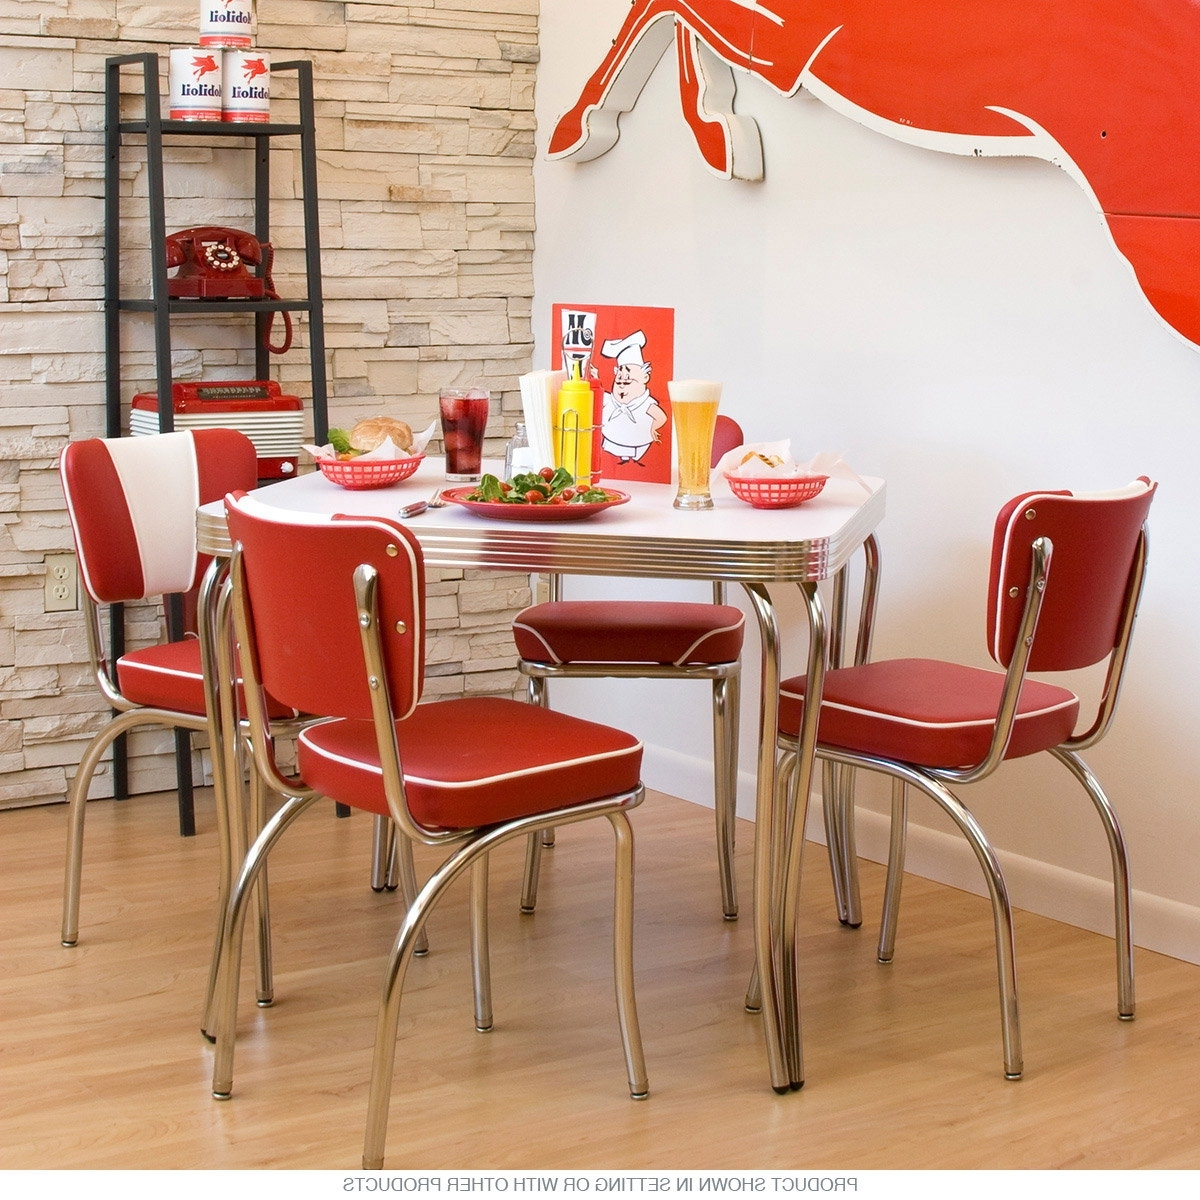 Chrome Dining Room Sets Pertaining To Famous Very Fashionable Retro Dining Table — Ugarelay Ugarelay (View 22 of 25)